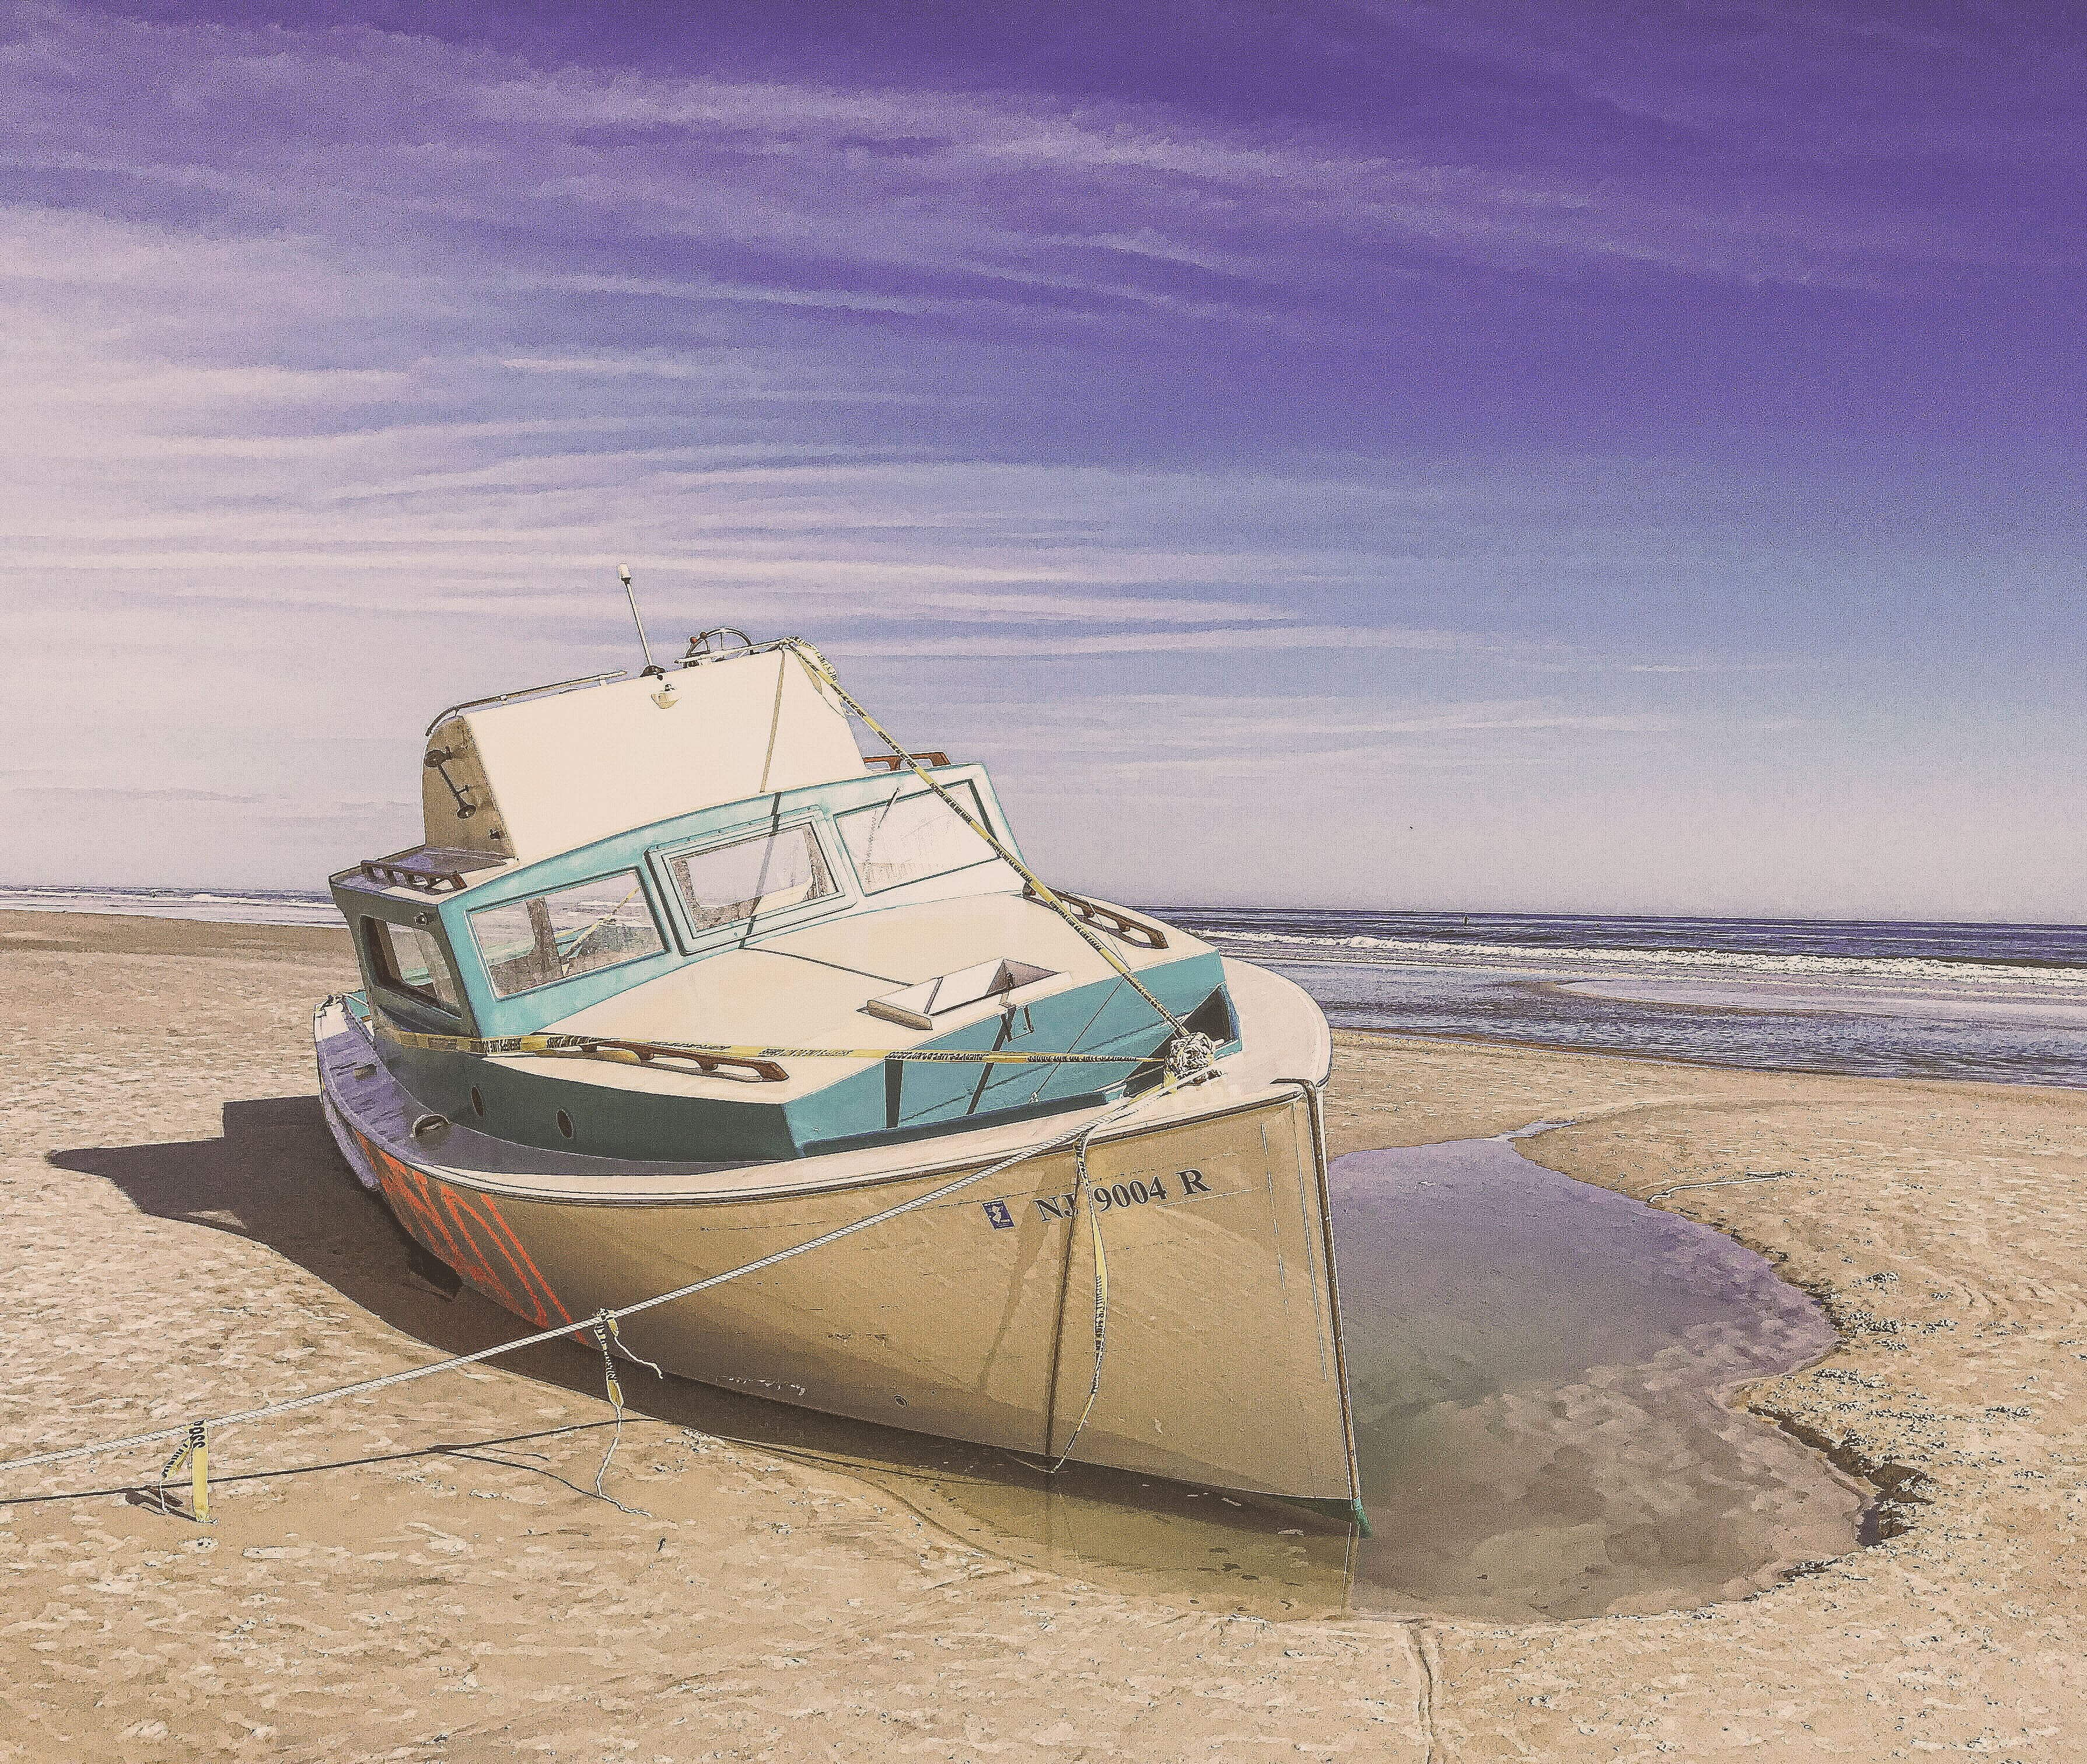 White and Teal Speedboat on Land